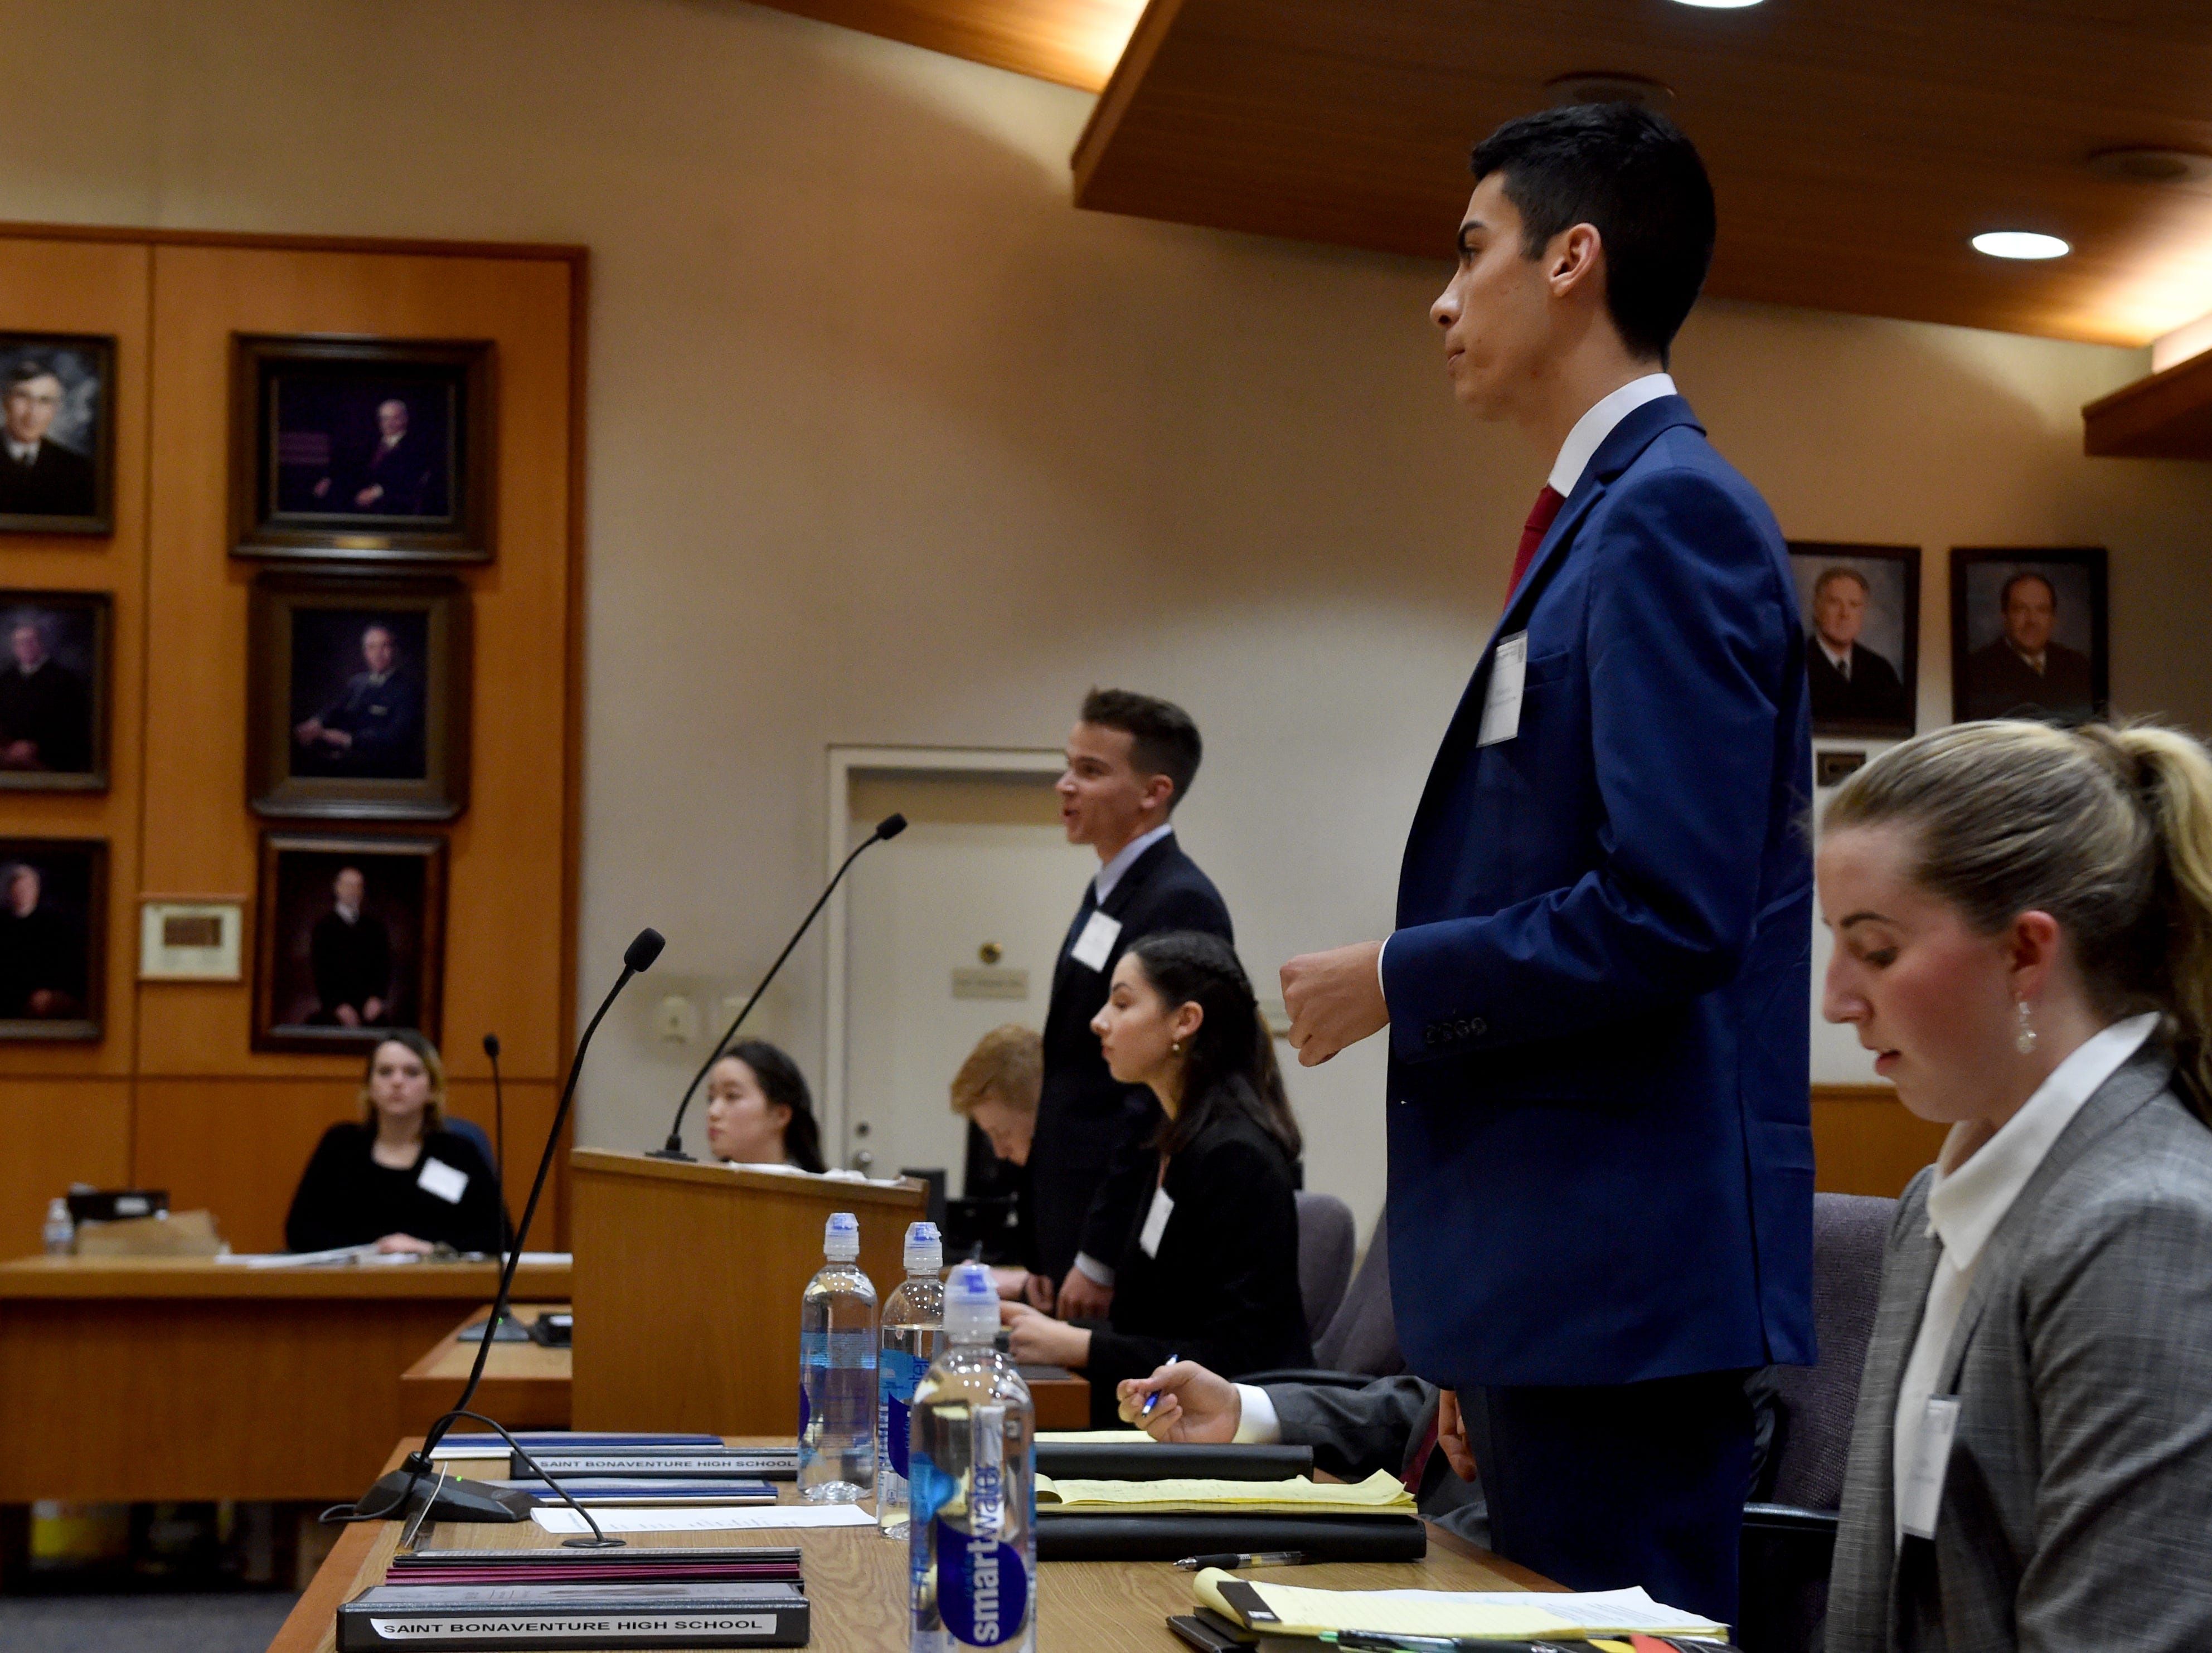 Micheal Paz, of St. Bonaventure High in Ventura, and Morgan Nash, of Trinity Pacific Christian School in Thousand Oaks, stand for the judge during the final rounds of the Ventura County Mock Trial on Thursday.